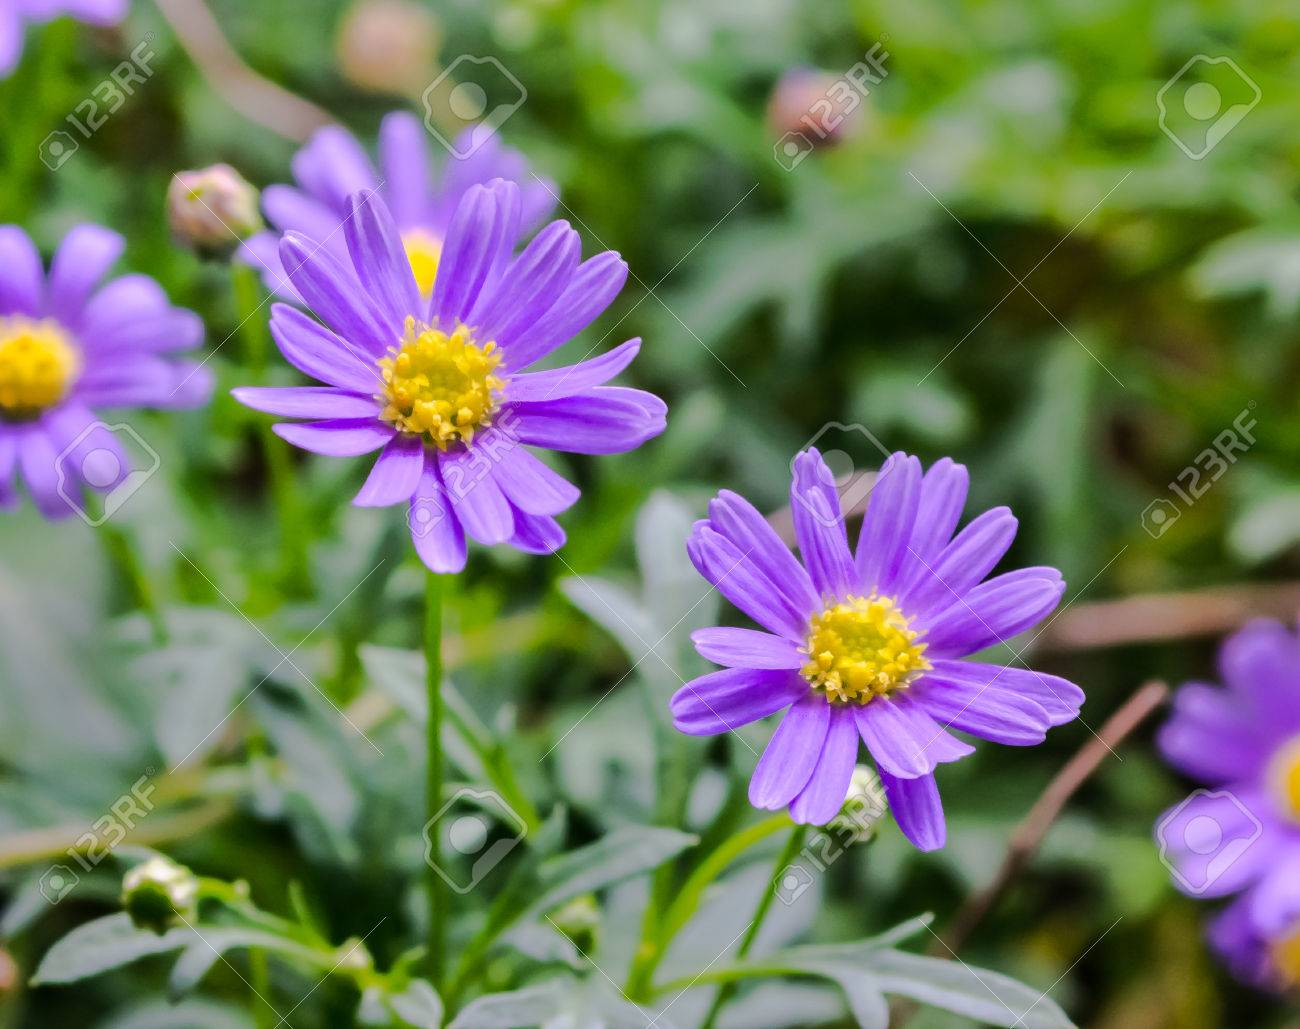 purple aster flower aster amellus in the garden stock photo, Beautiful flower